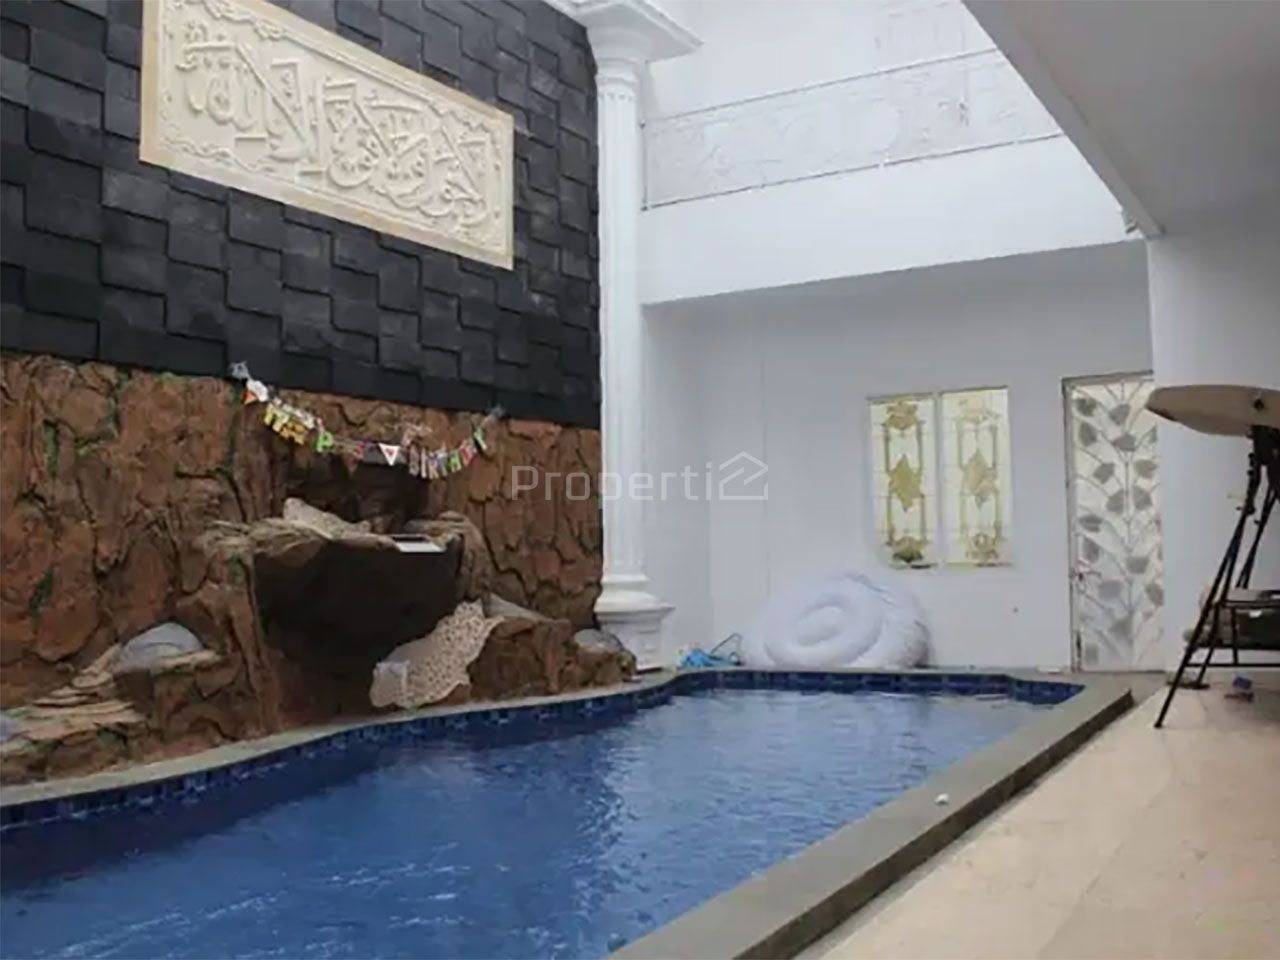 Luxury House in BILLYMOON Complex, Pondok Kelapa, Duren Sawit